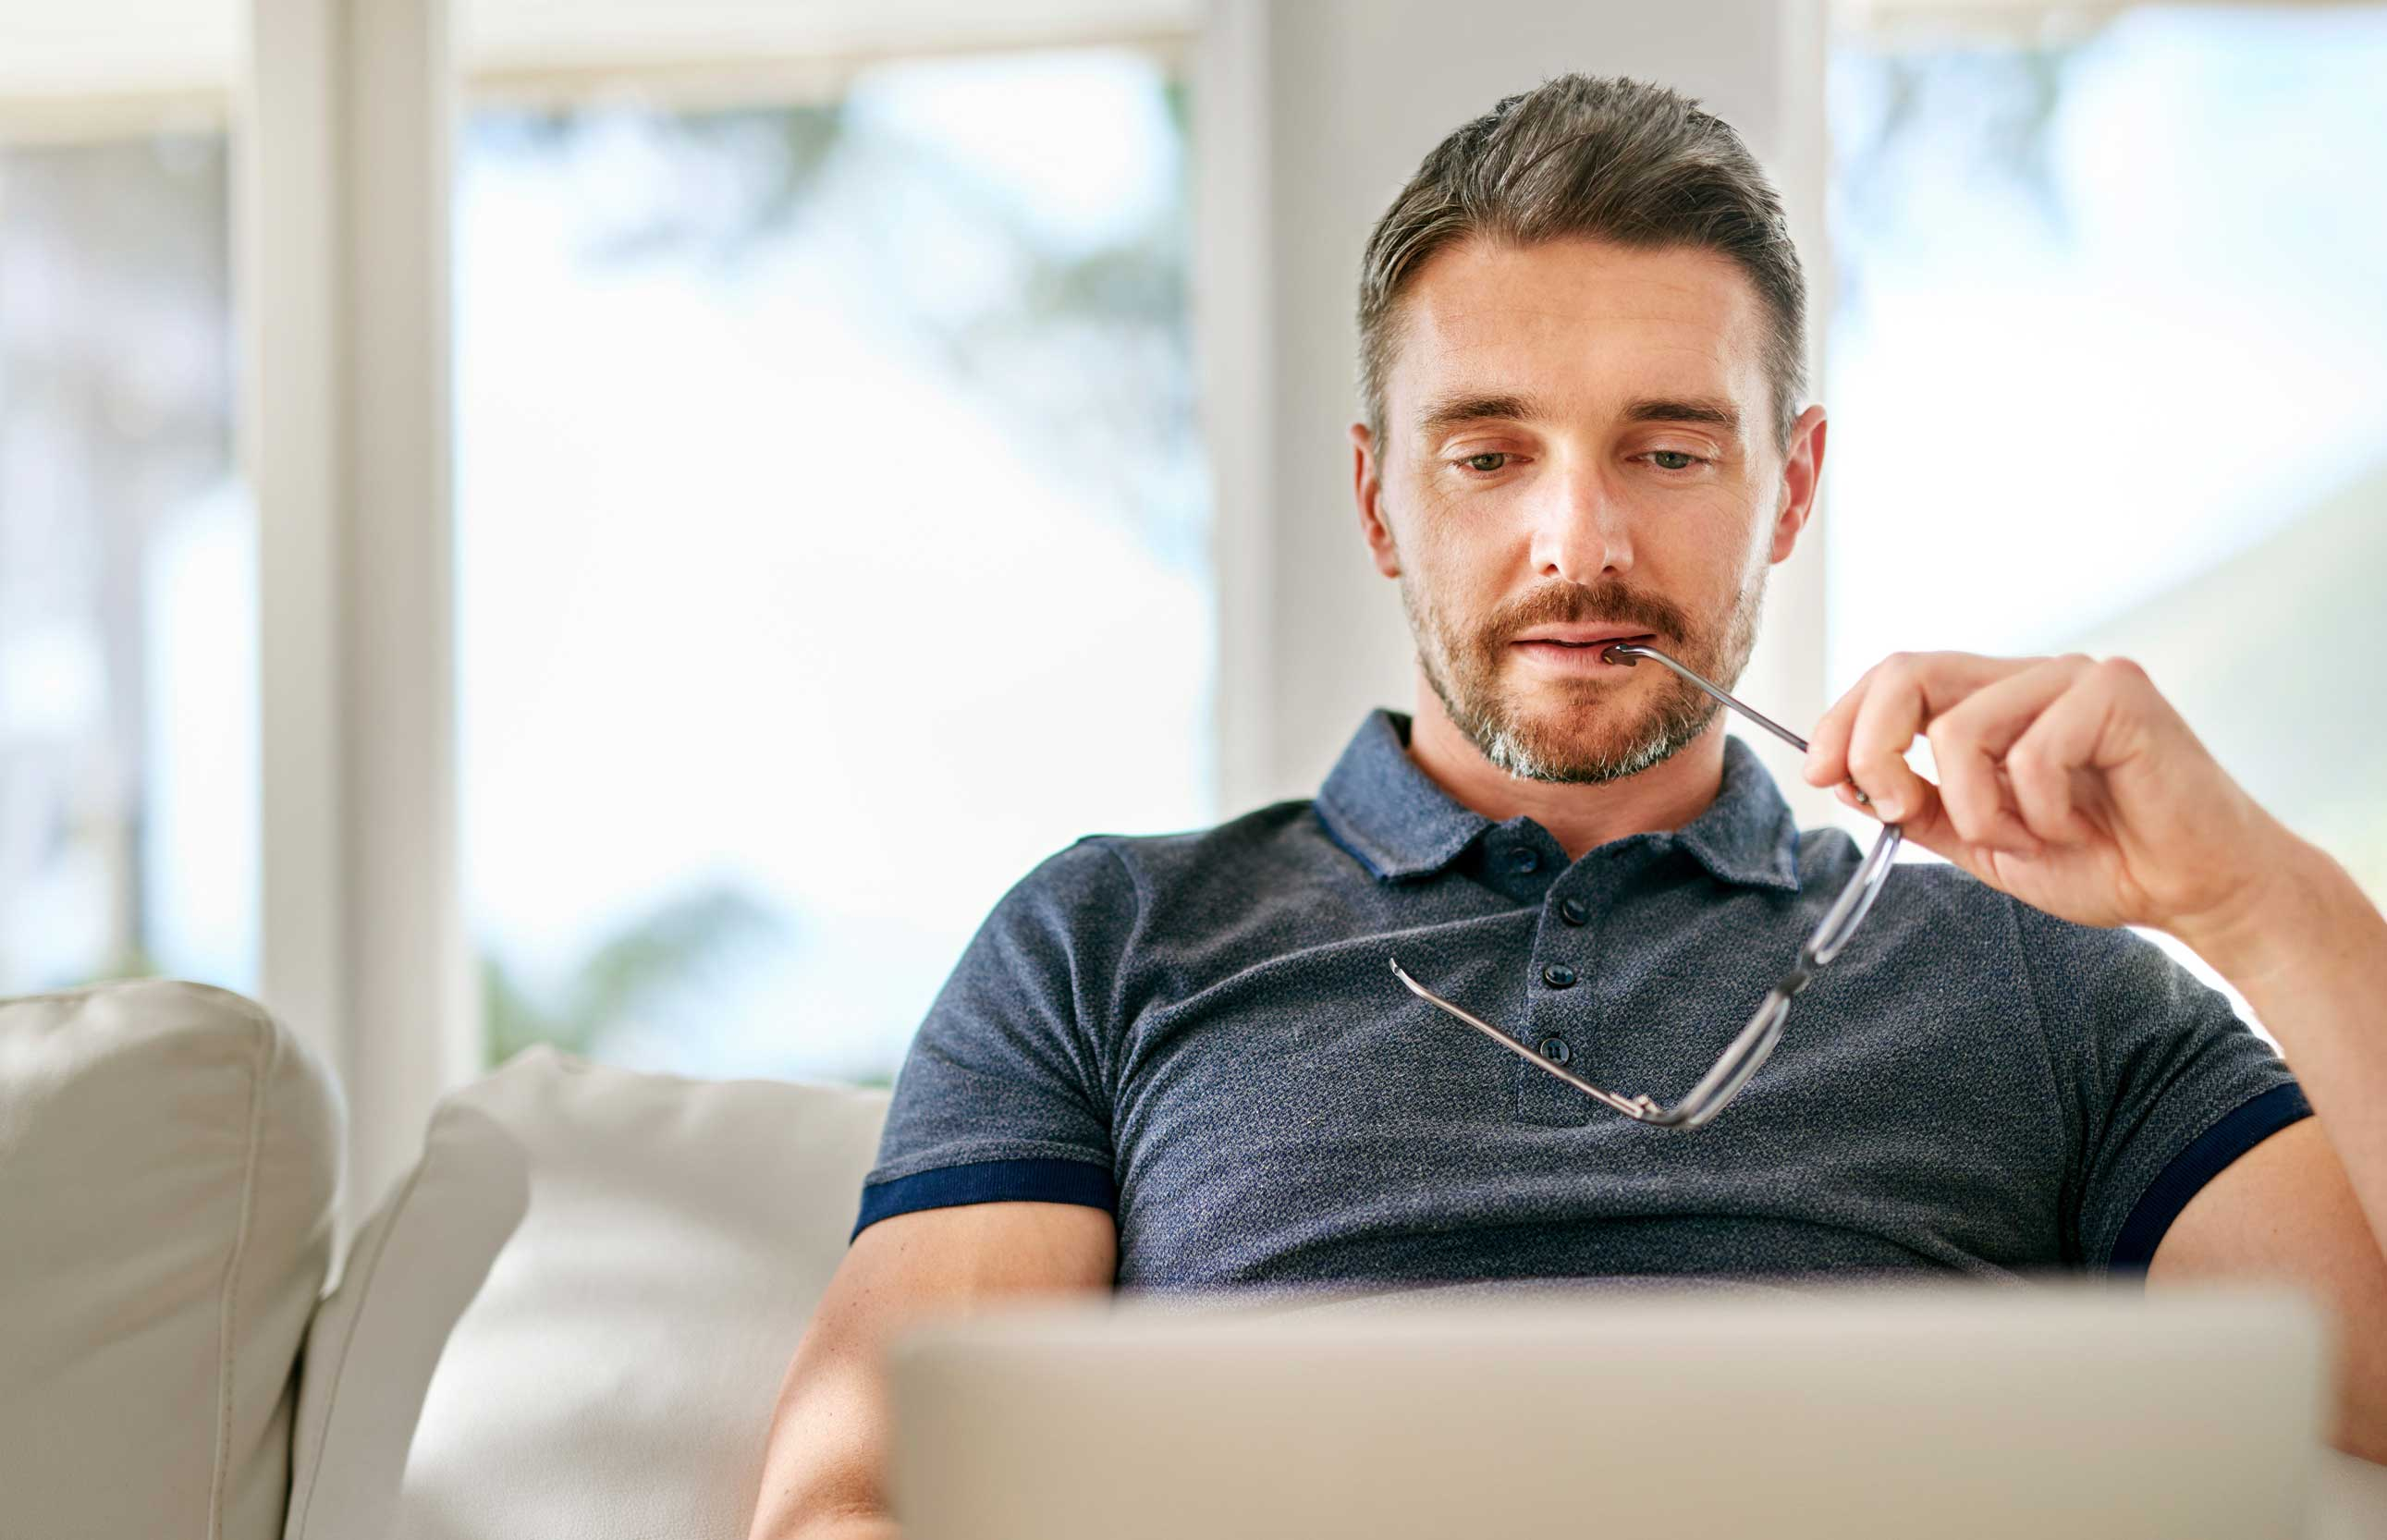 Man at laptop computer contemplating how the new tax laws affect him